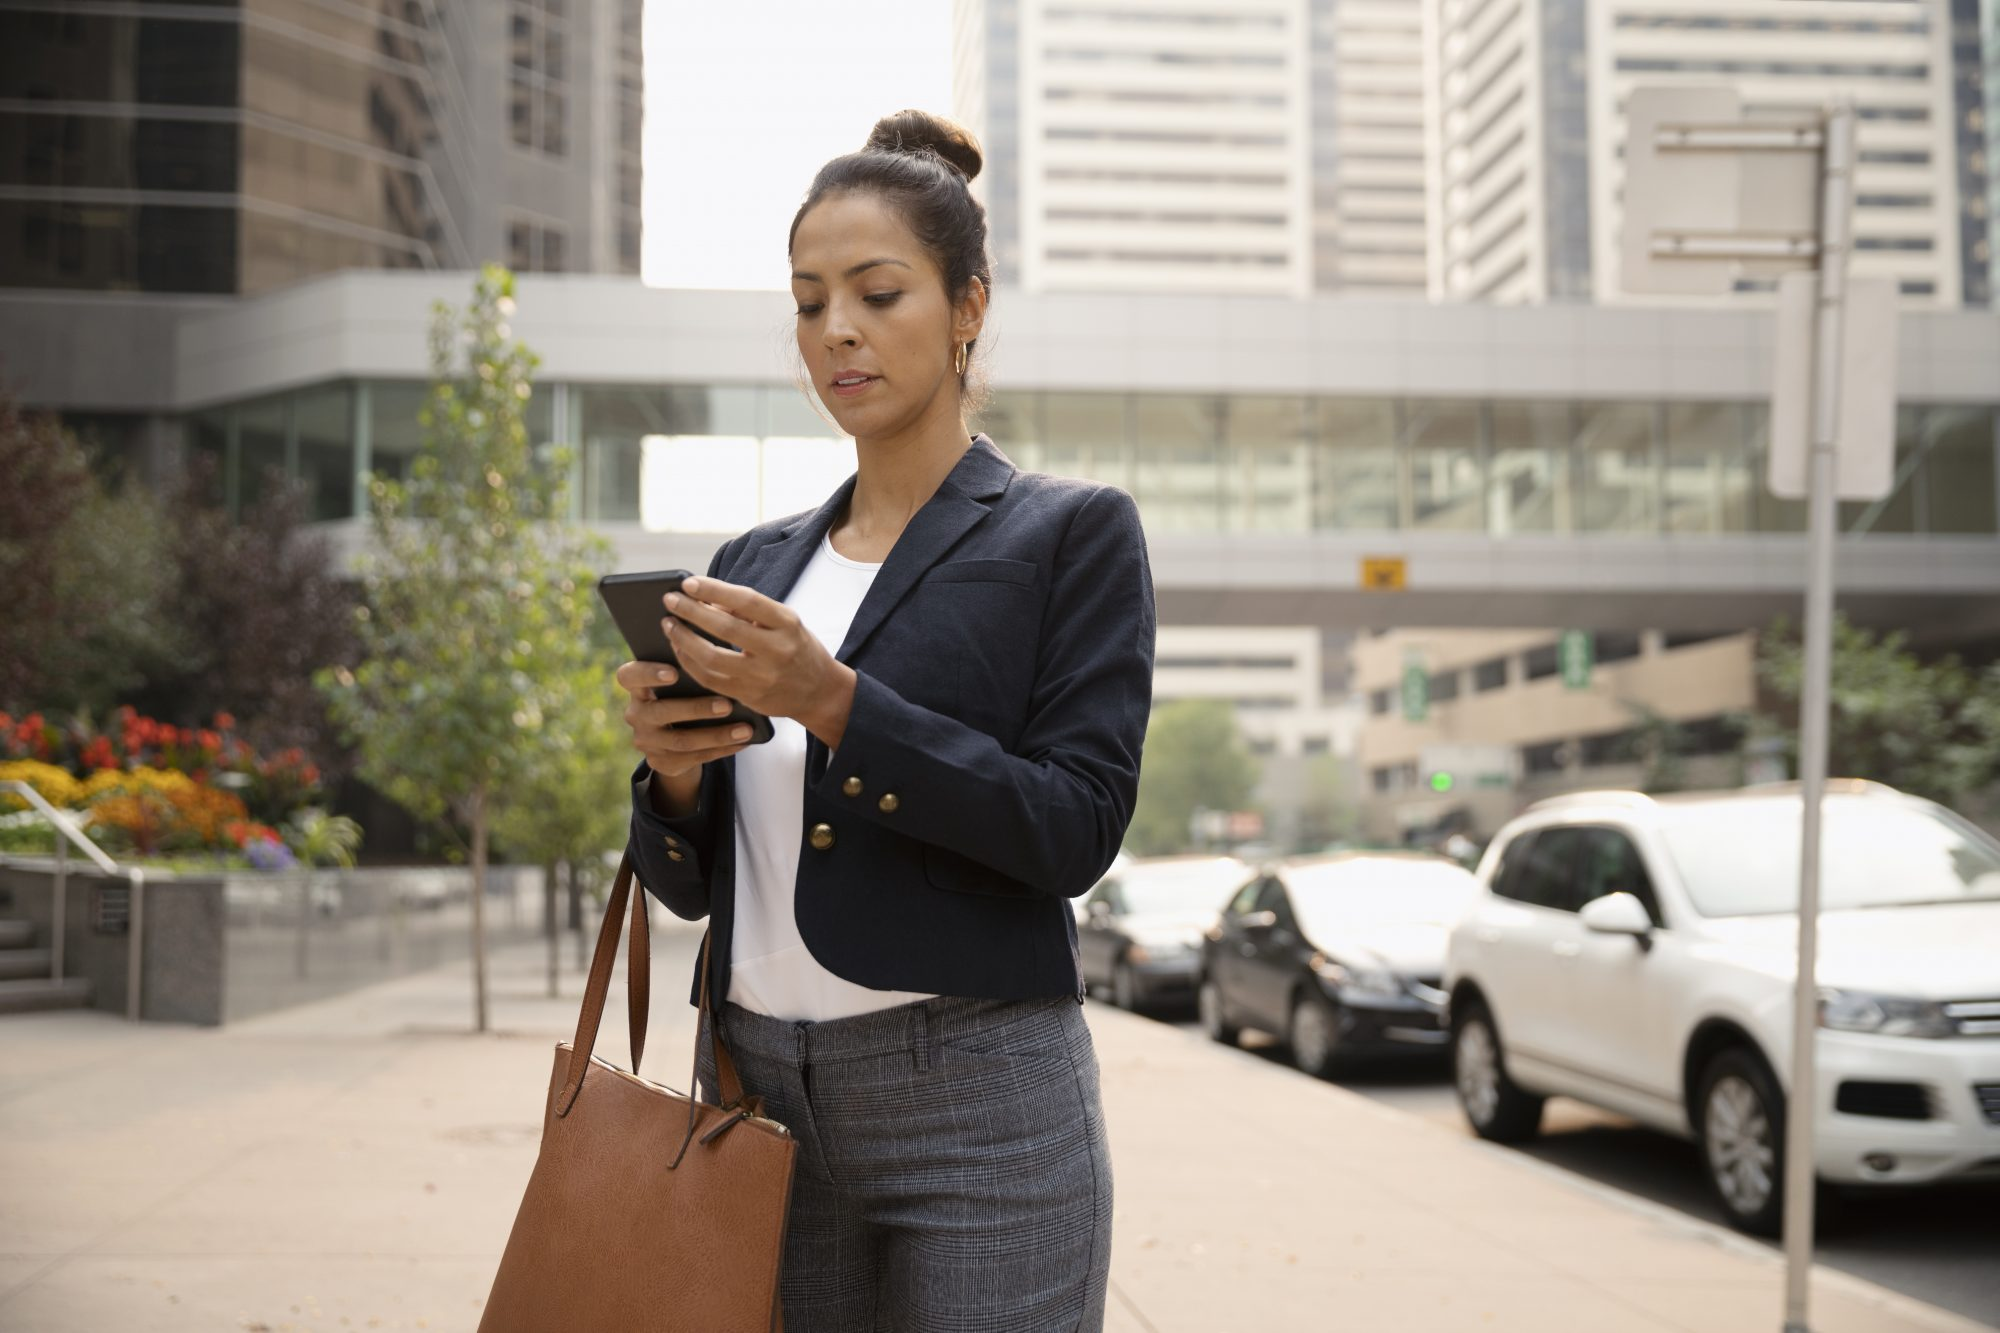 Business woman on her phone outside